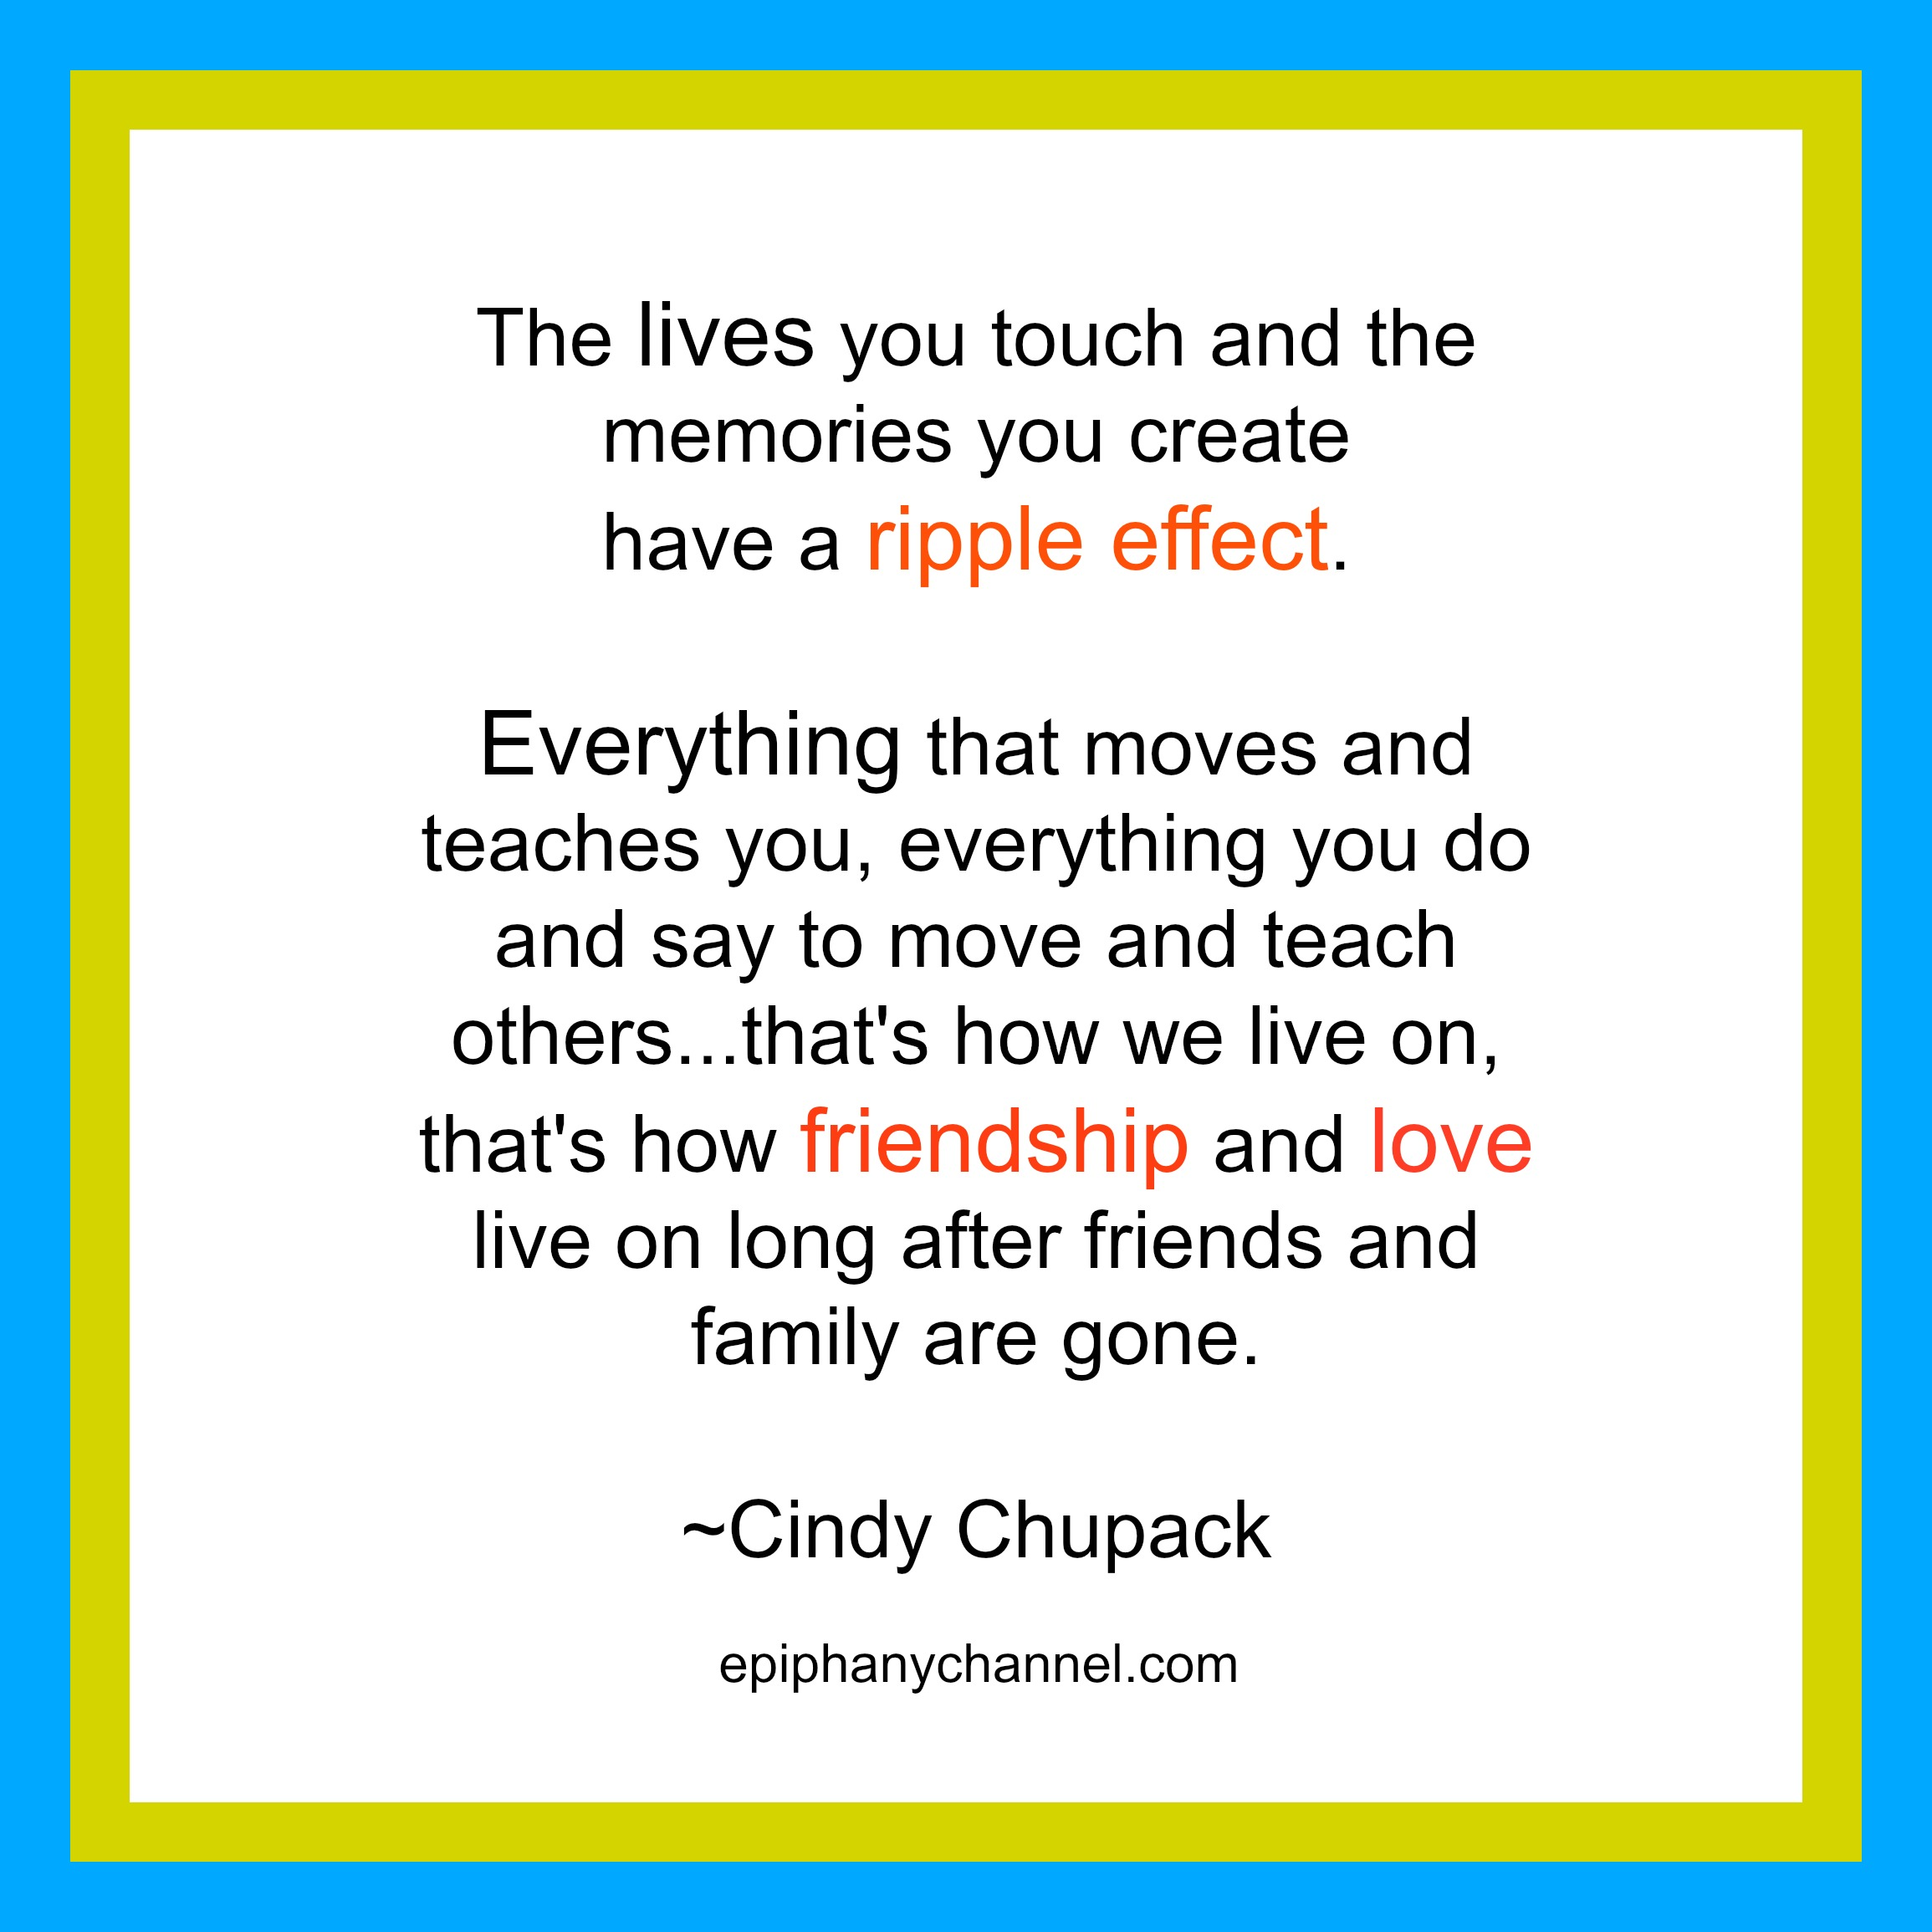 epiphanies on writing love death never telling the same story cindy chupack ripple effect